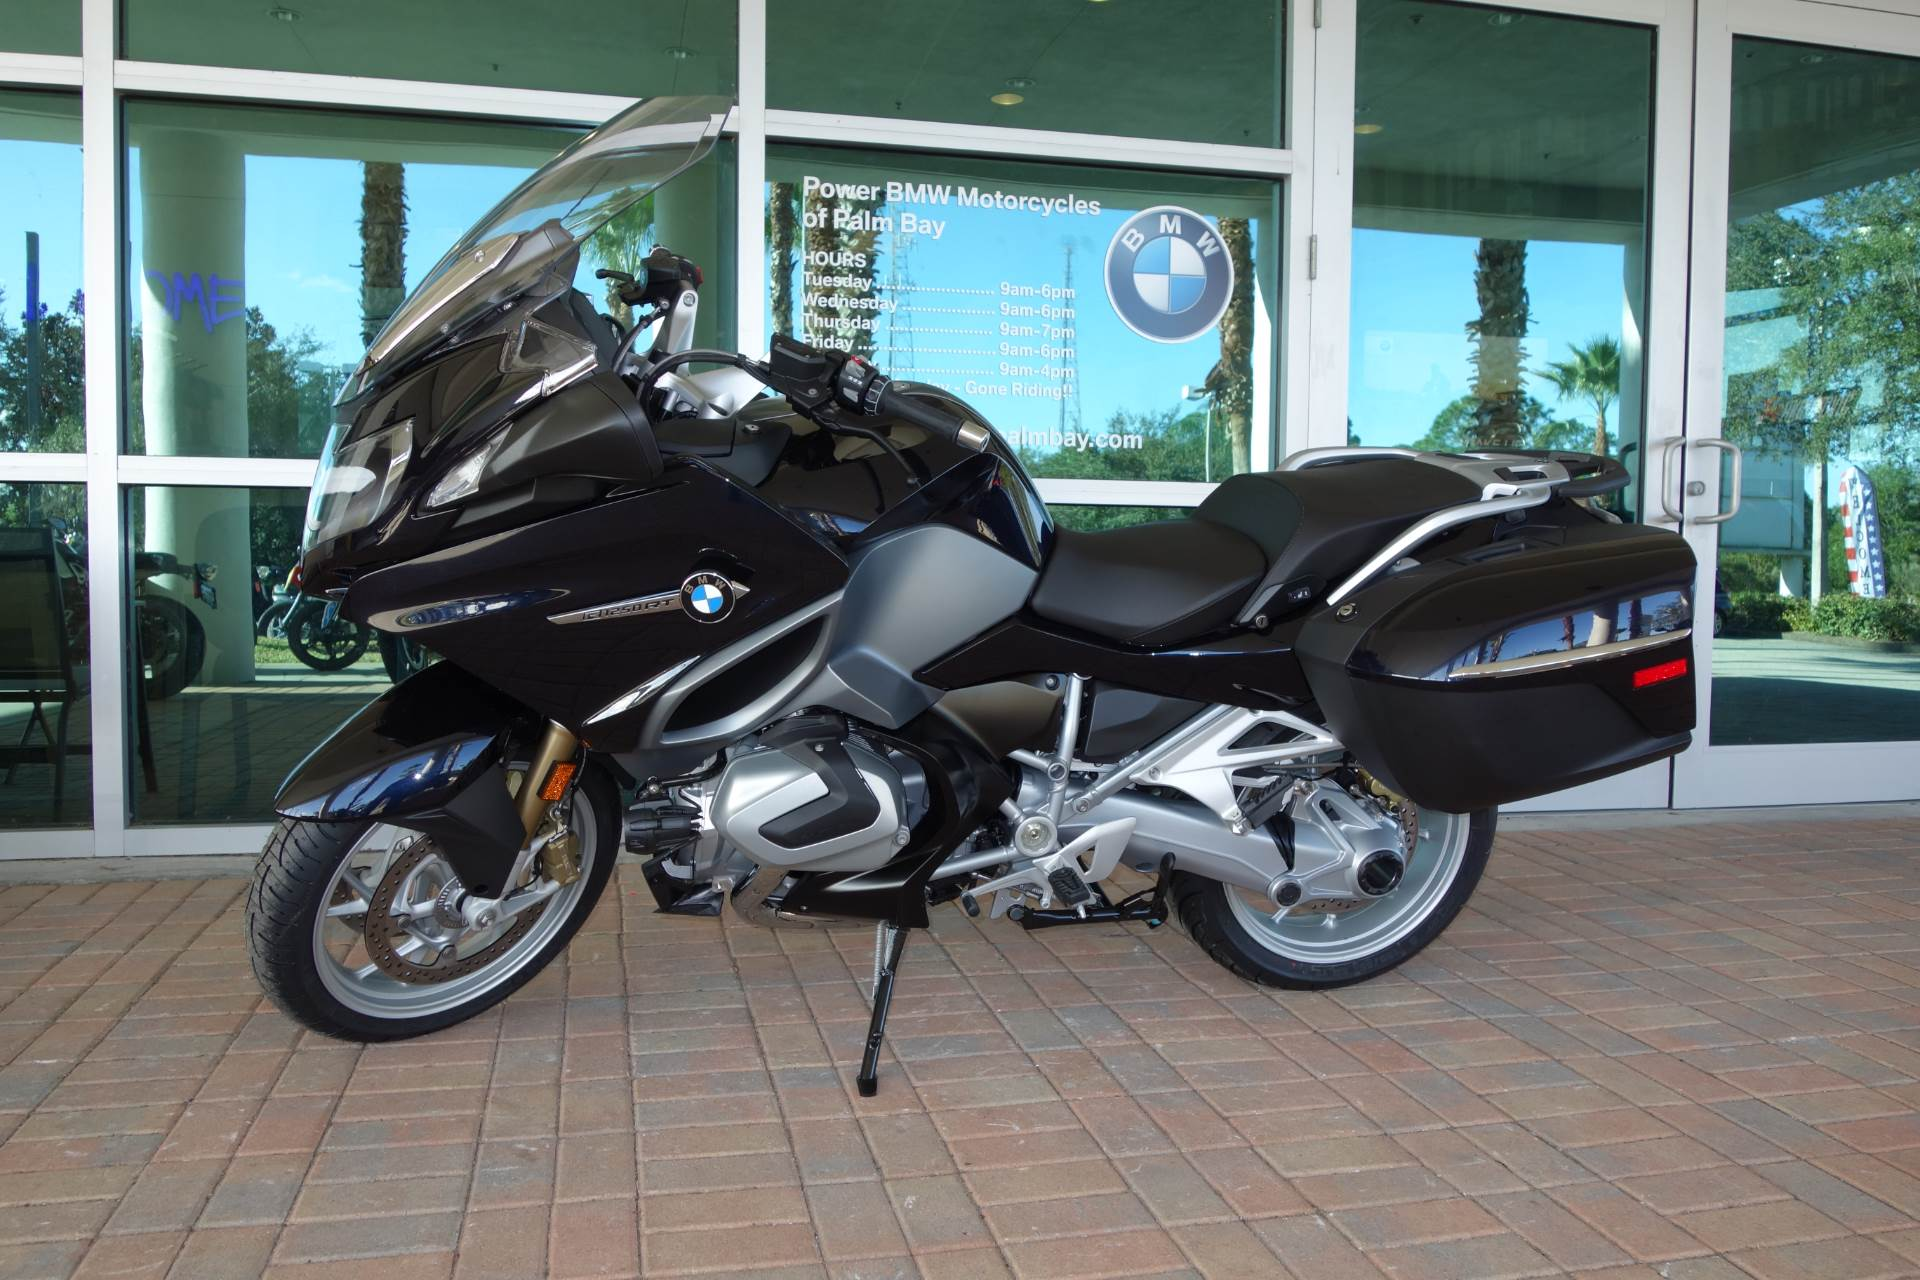 a486fd8abf56 New 2019 BMW R 1250 RT Carbon Black Metallic